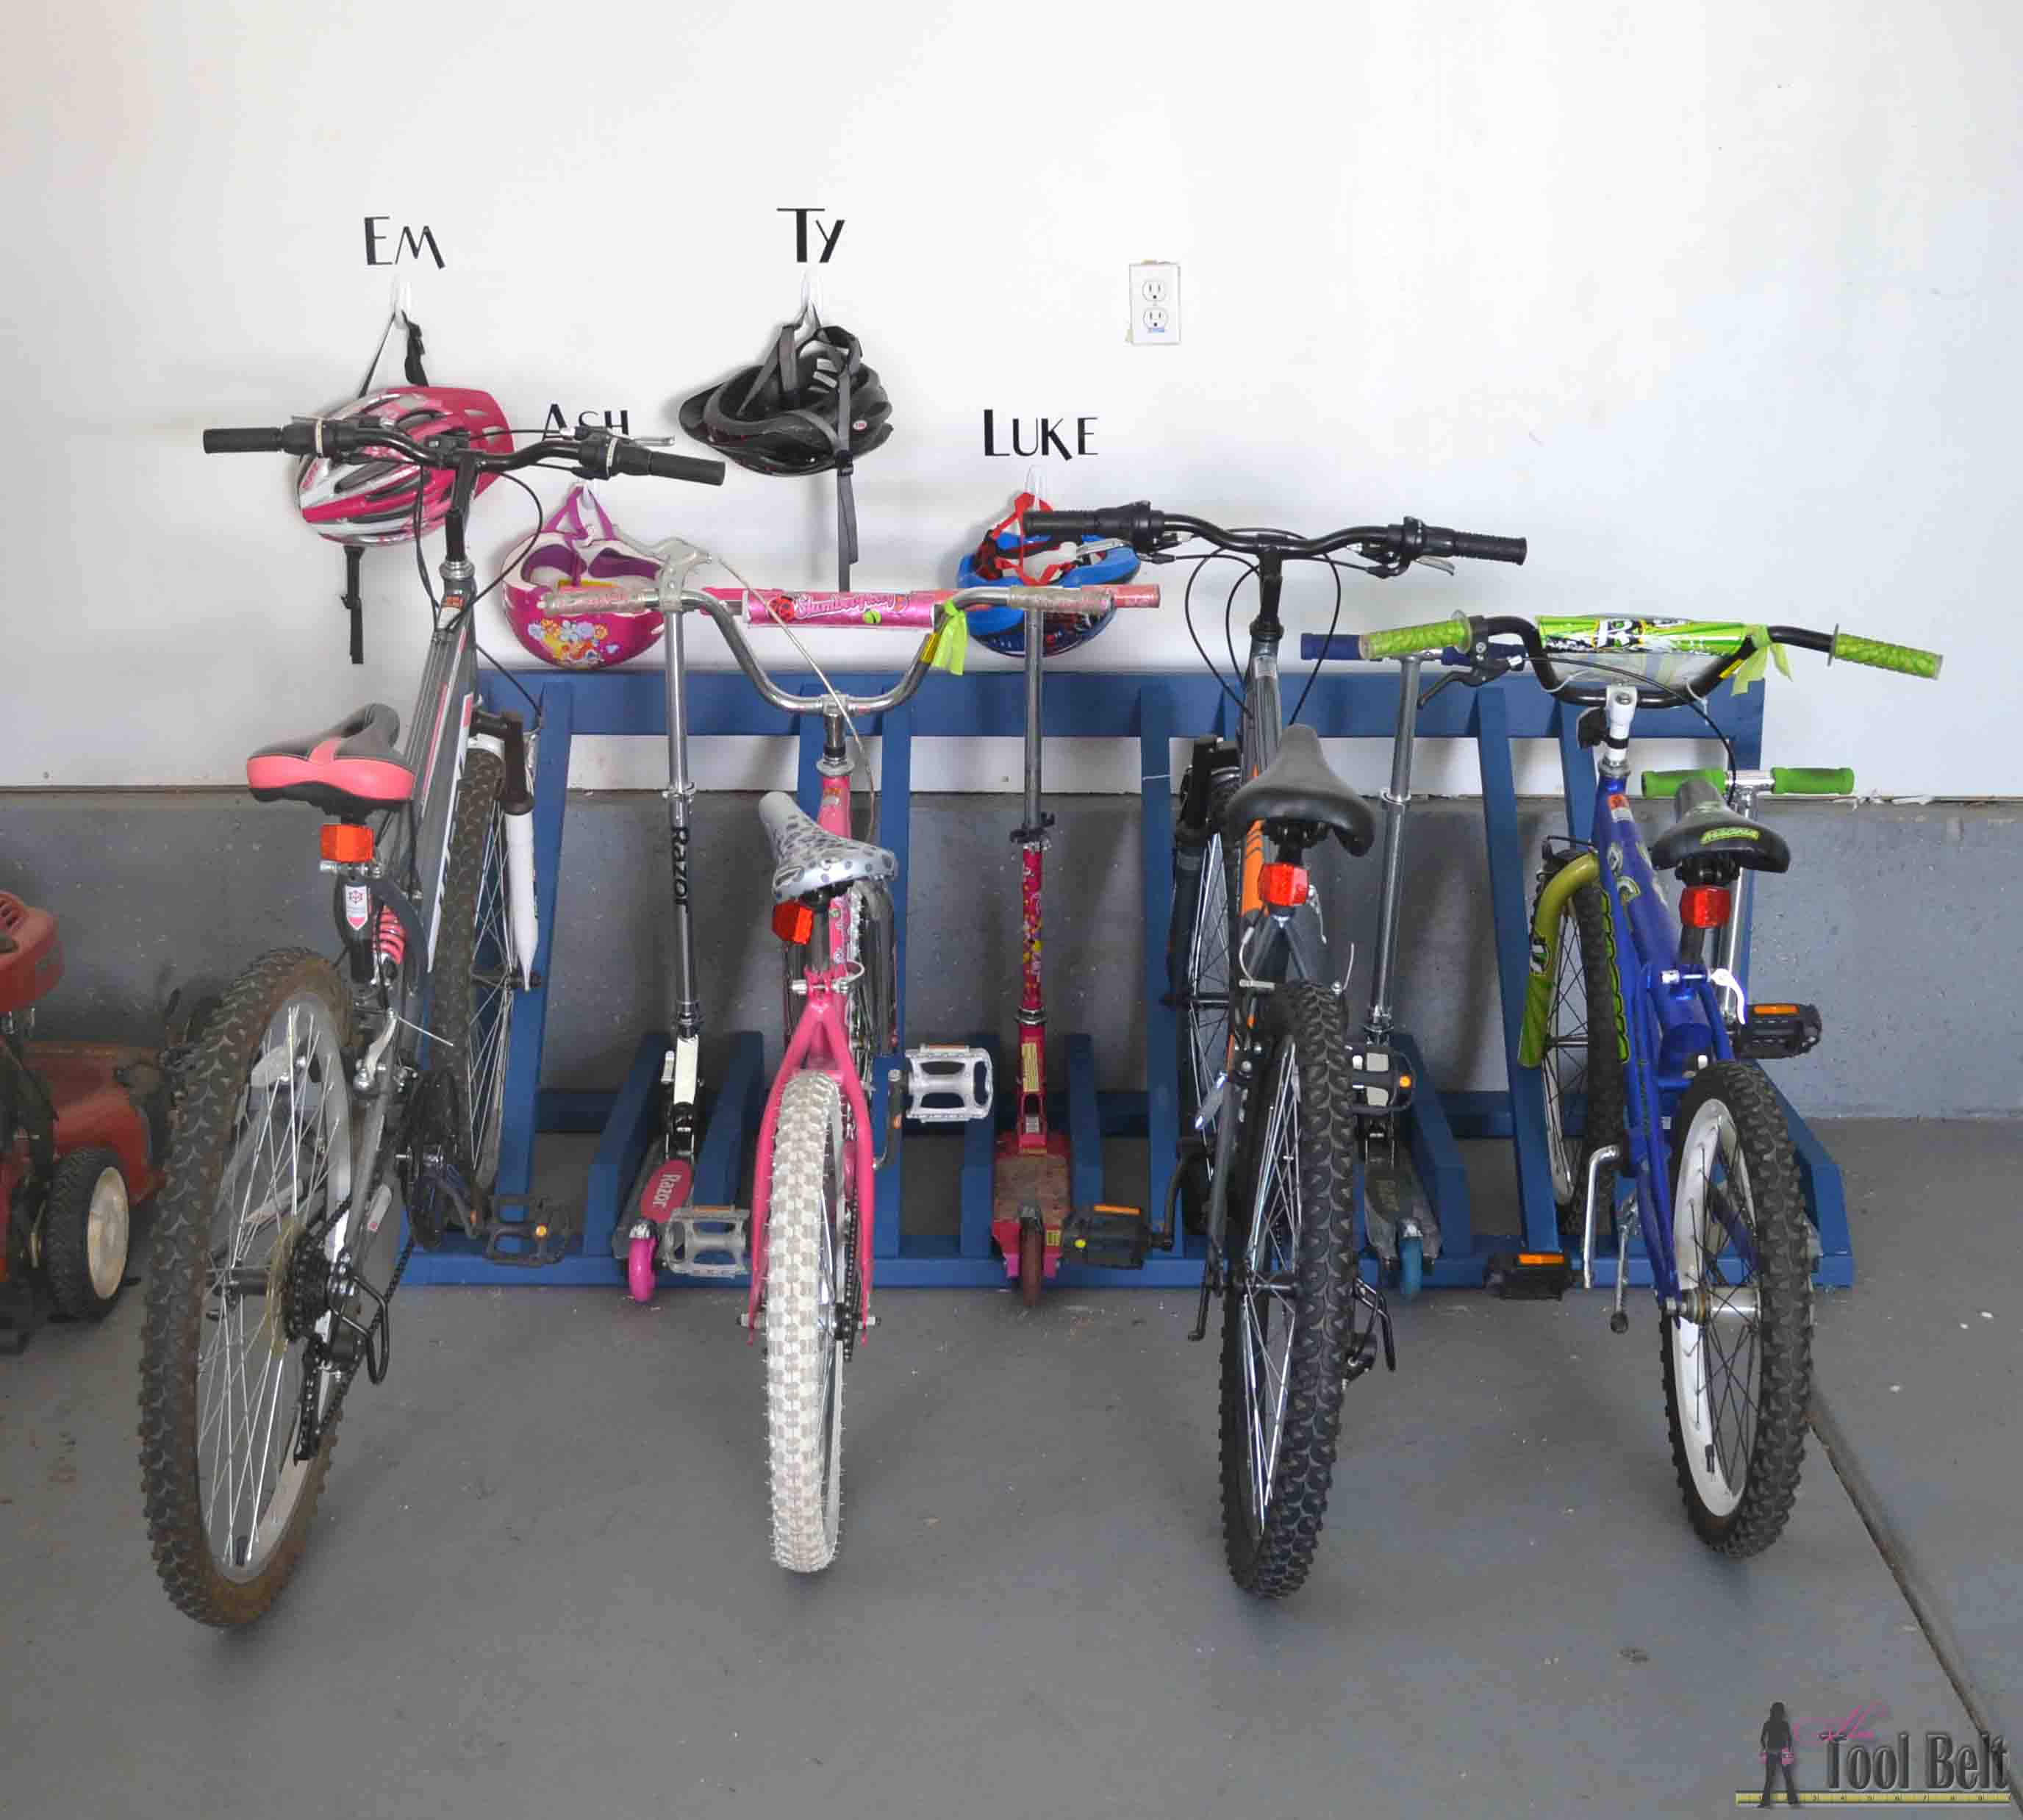 Diy bike and scooter rack her tool belt the perfect way to organize those bikes and scooters all over the garage free and solutioingenieria Image collections